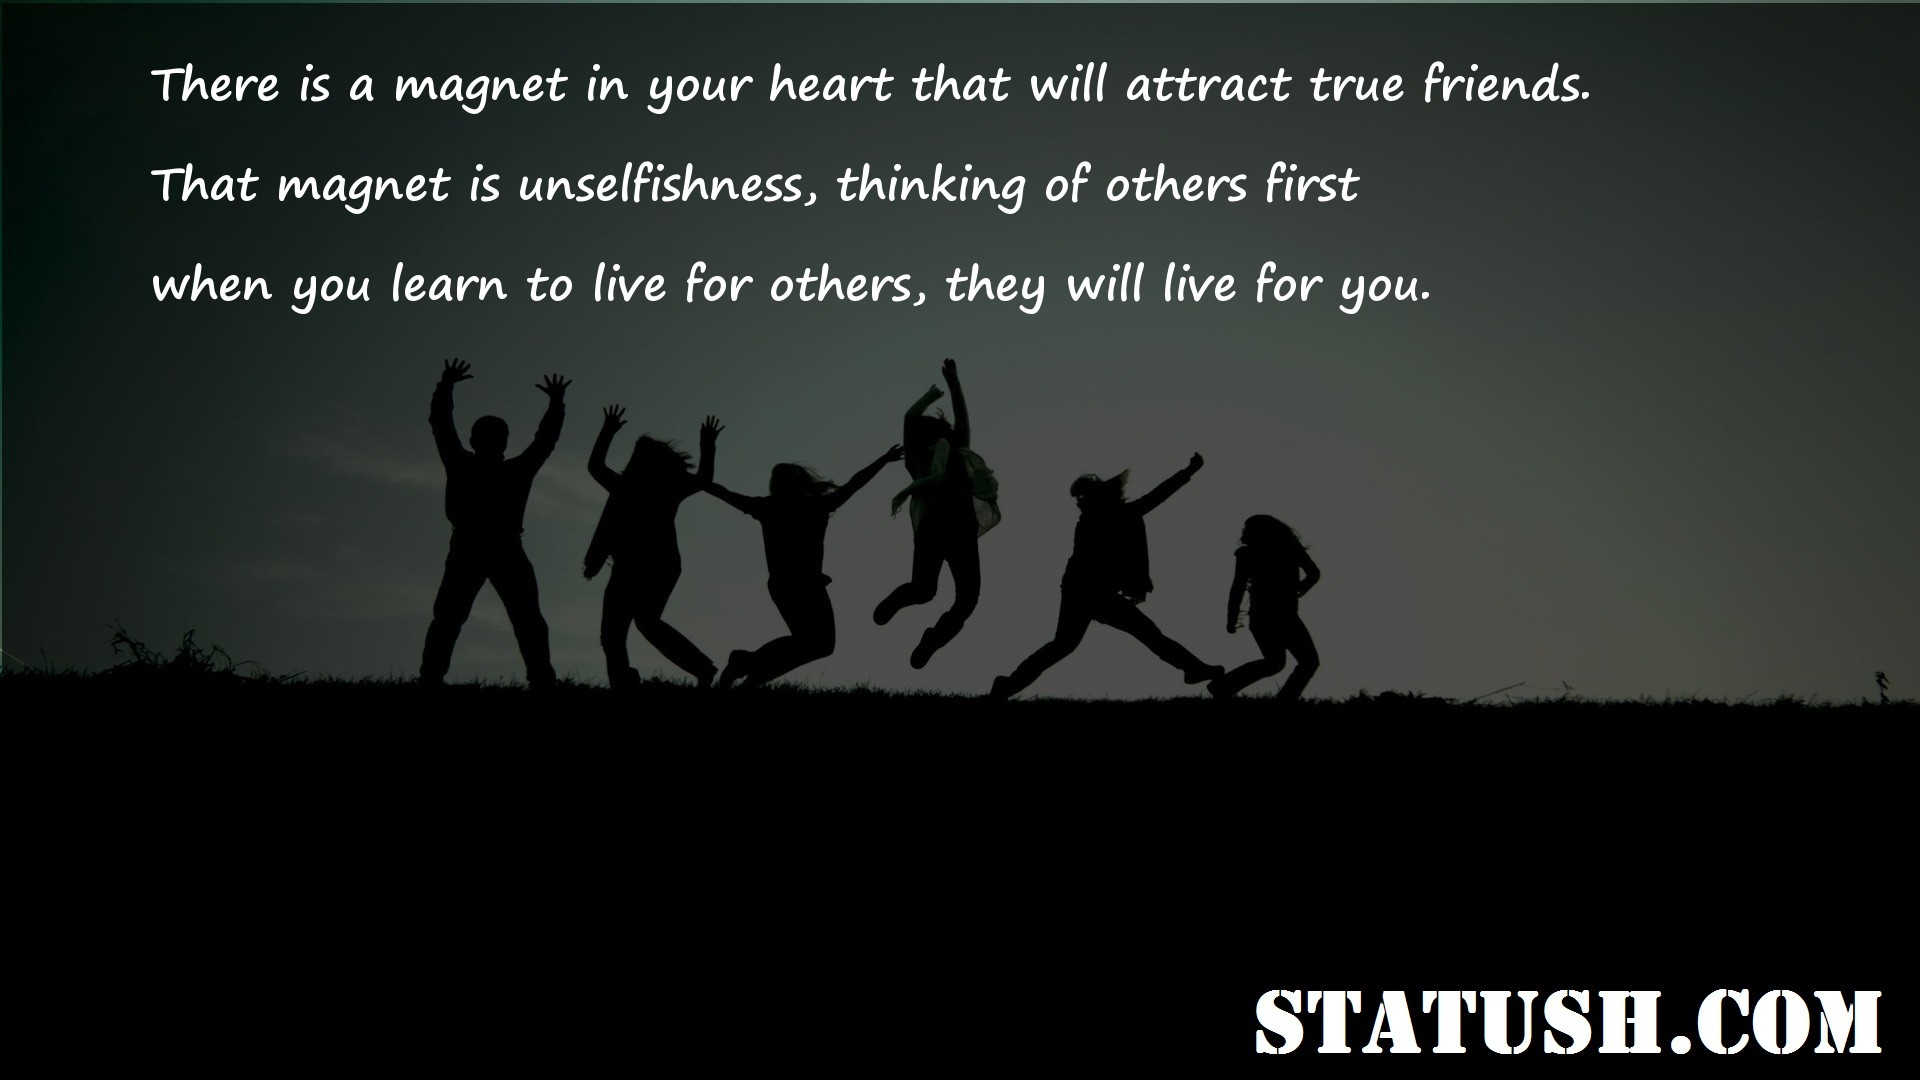 There is a magnet in your heart that will attract true friends